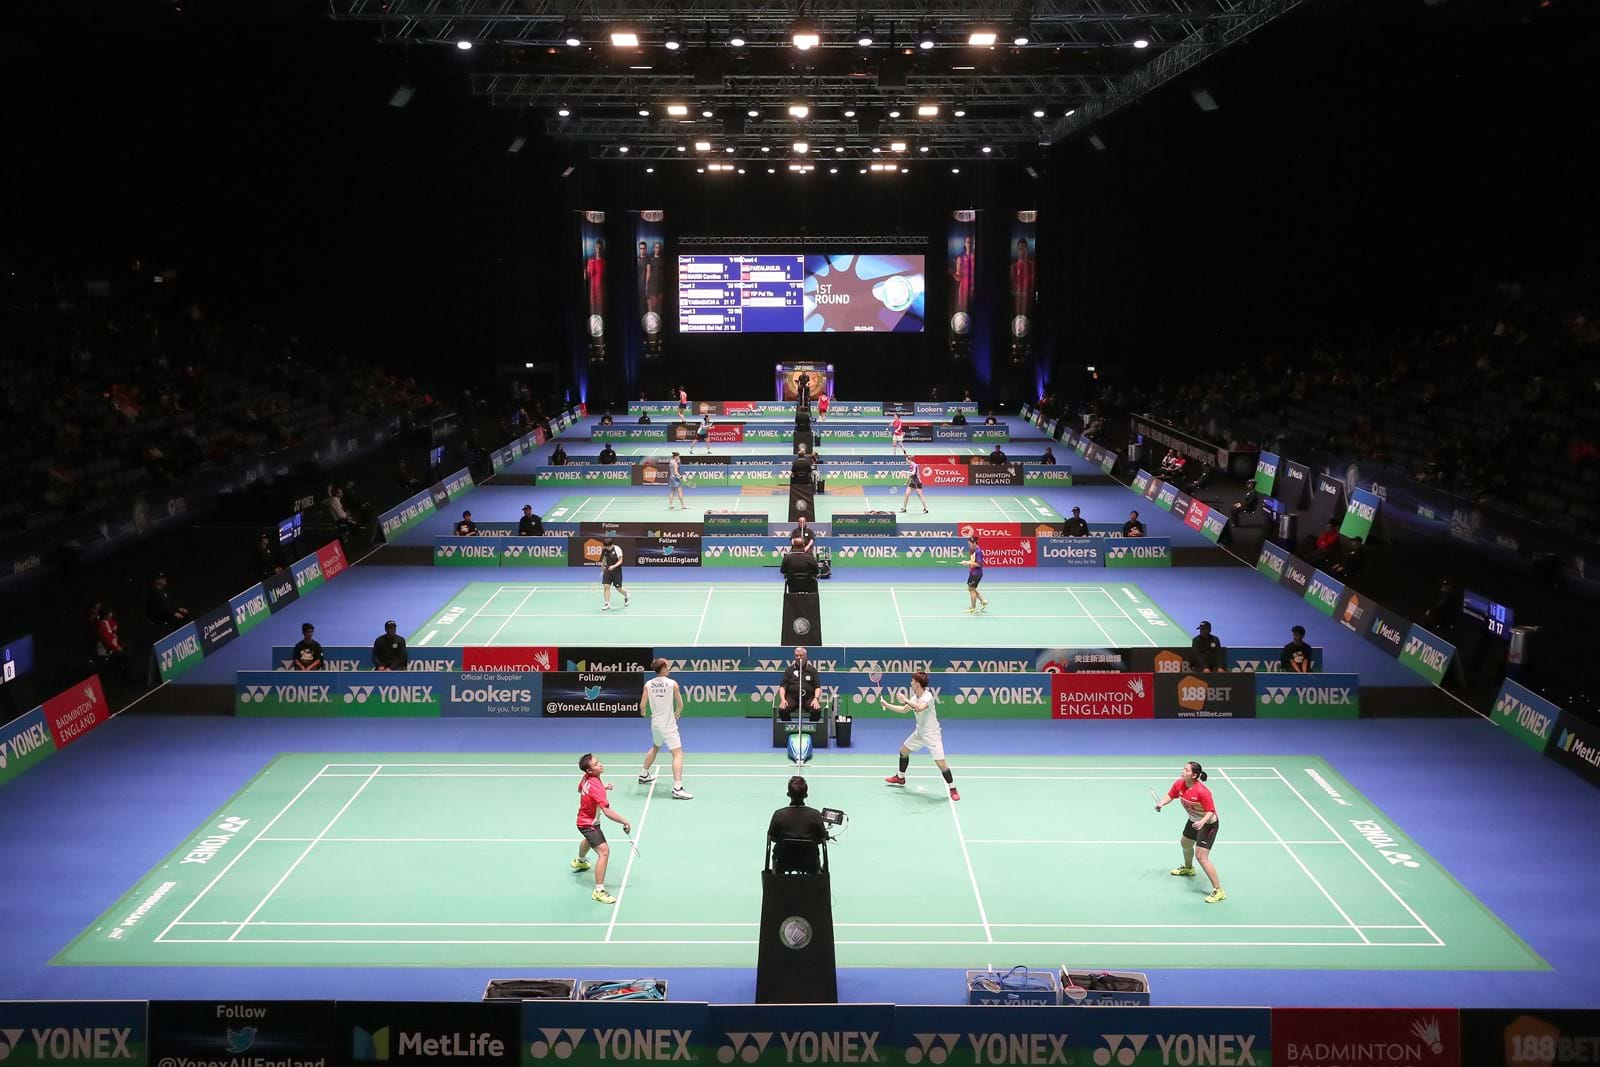 SUNSET+VINE SMASHES FOUR YEAR DEAL WITH BADMINTON ENGLAND